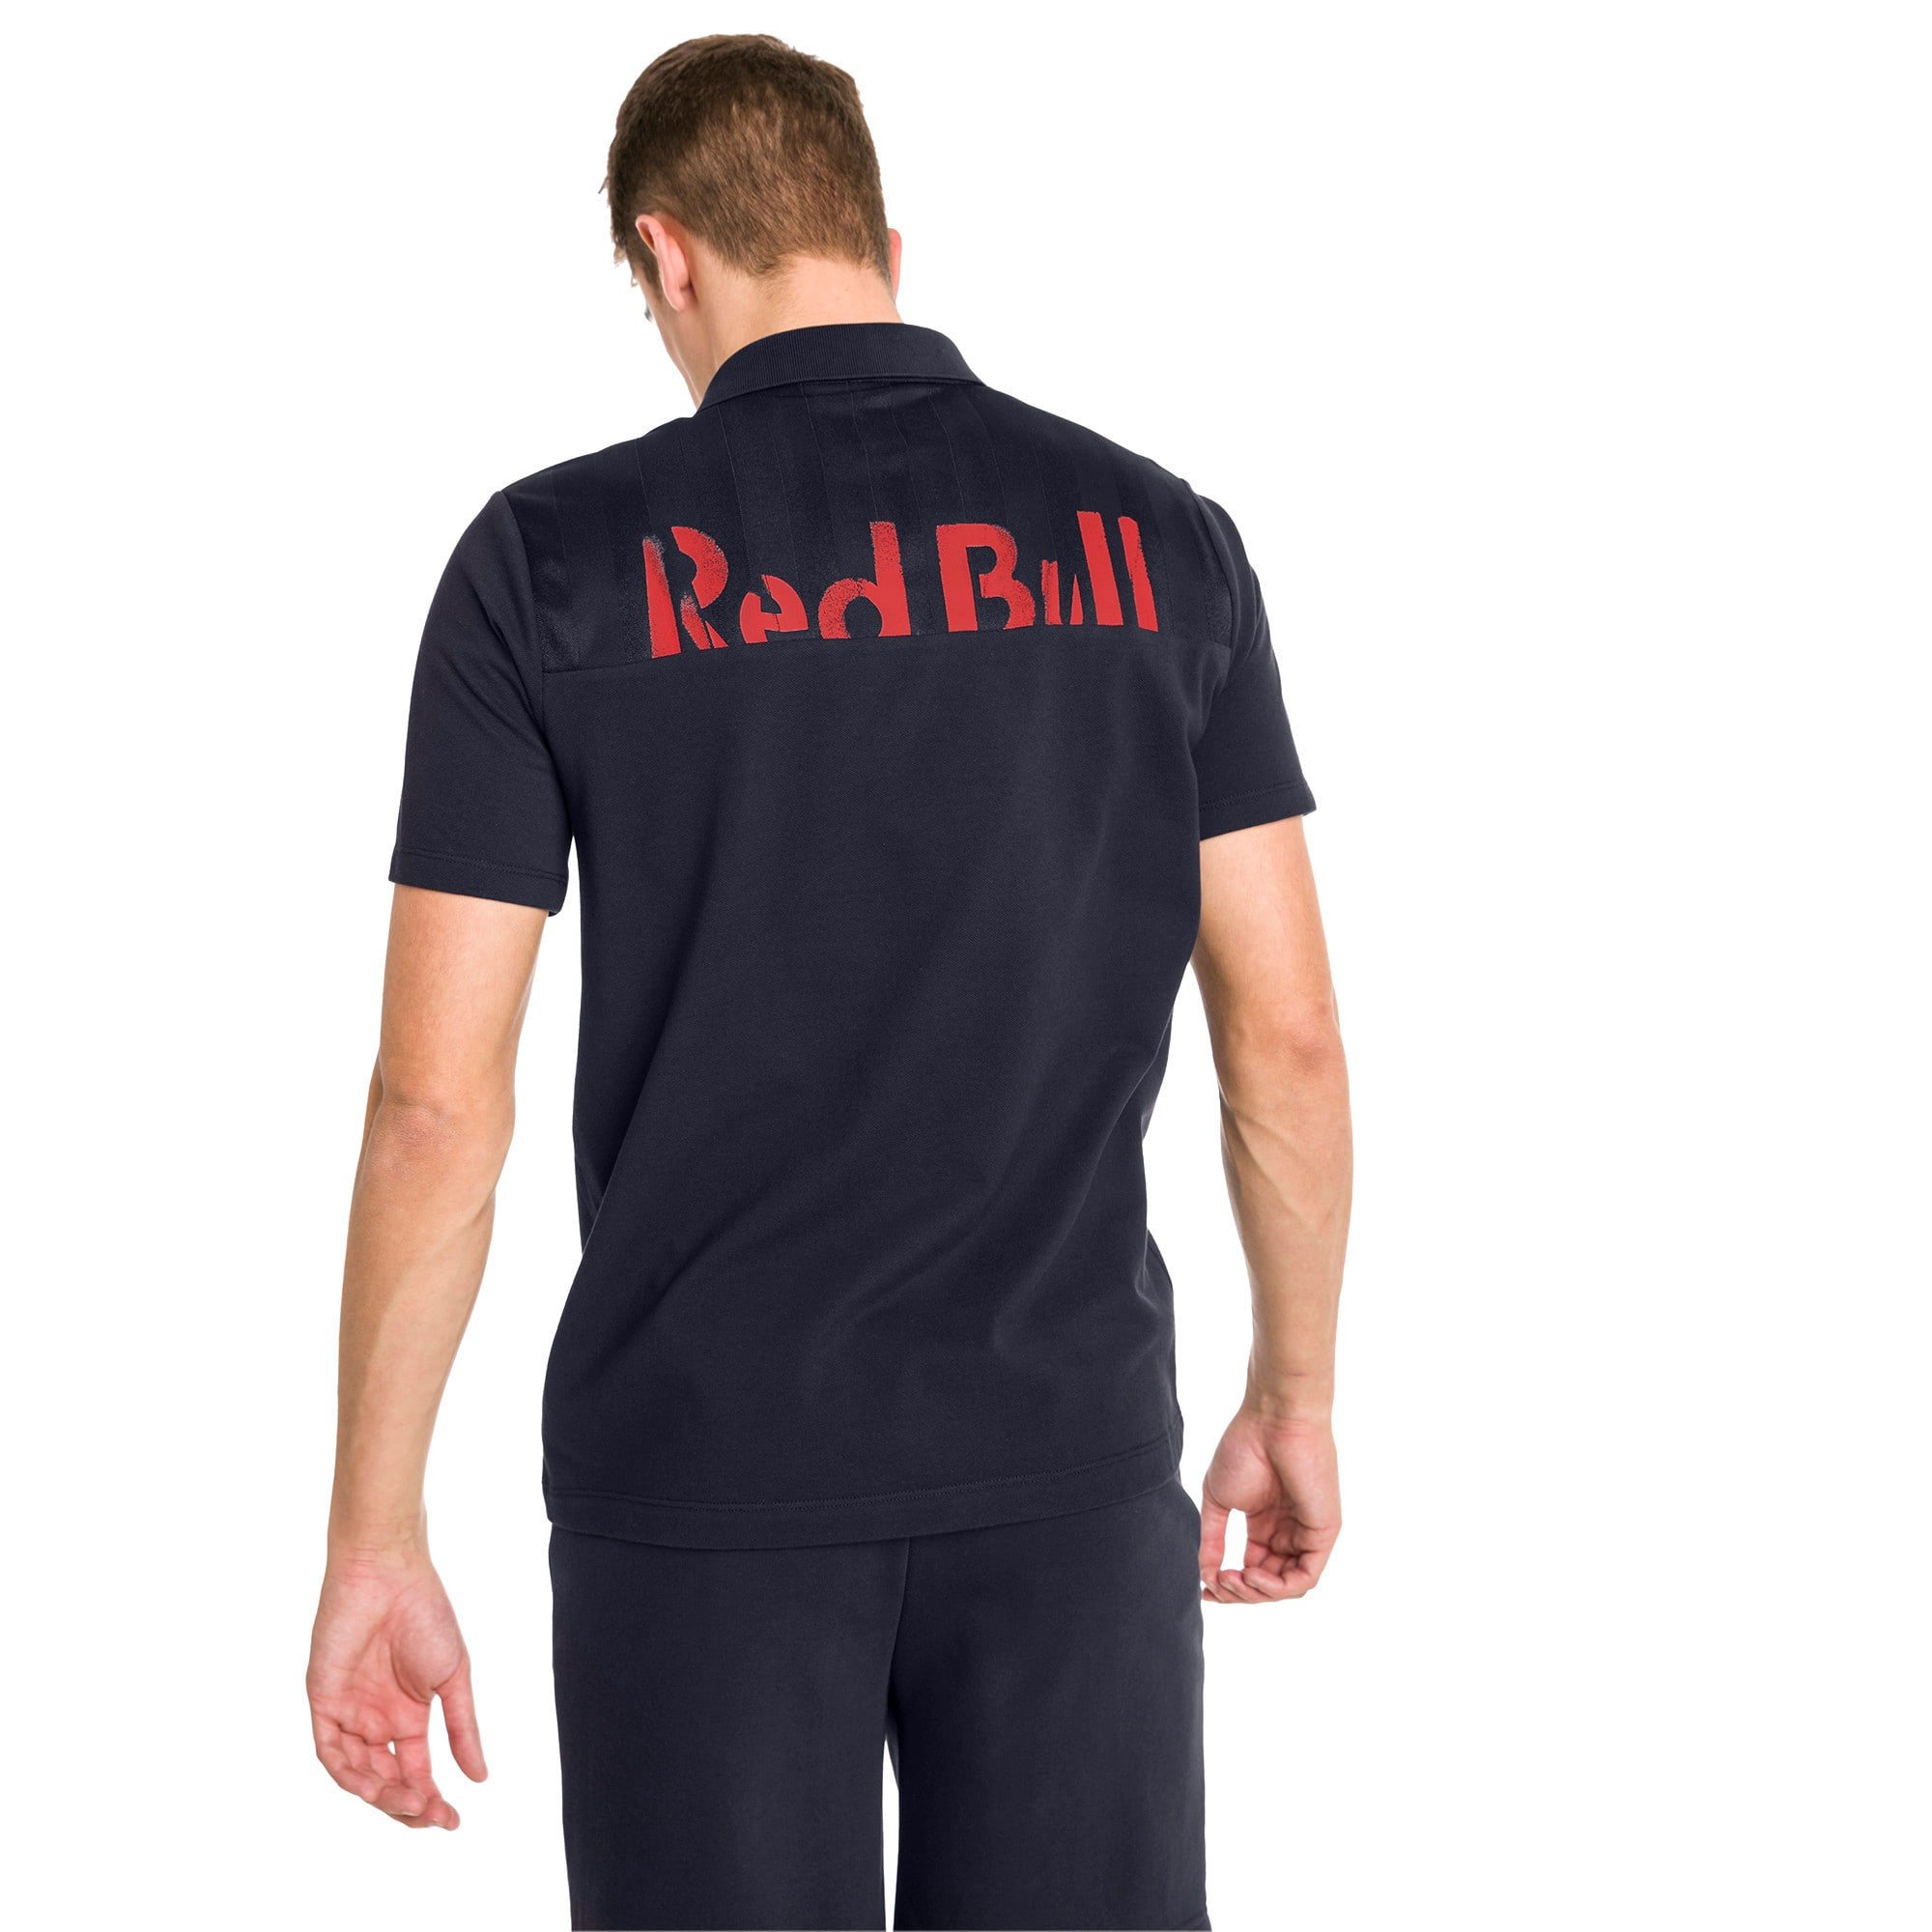 Red Bull Racing Short Sleeve Men's Polo Shirt, NIGHT SKY, large